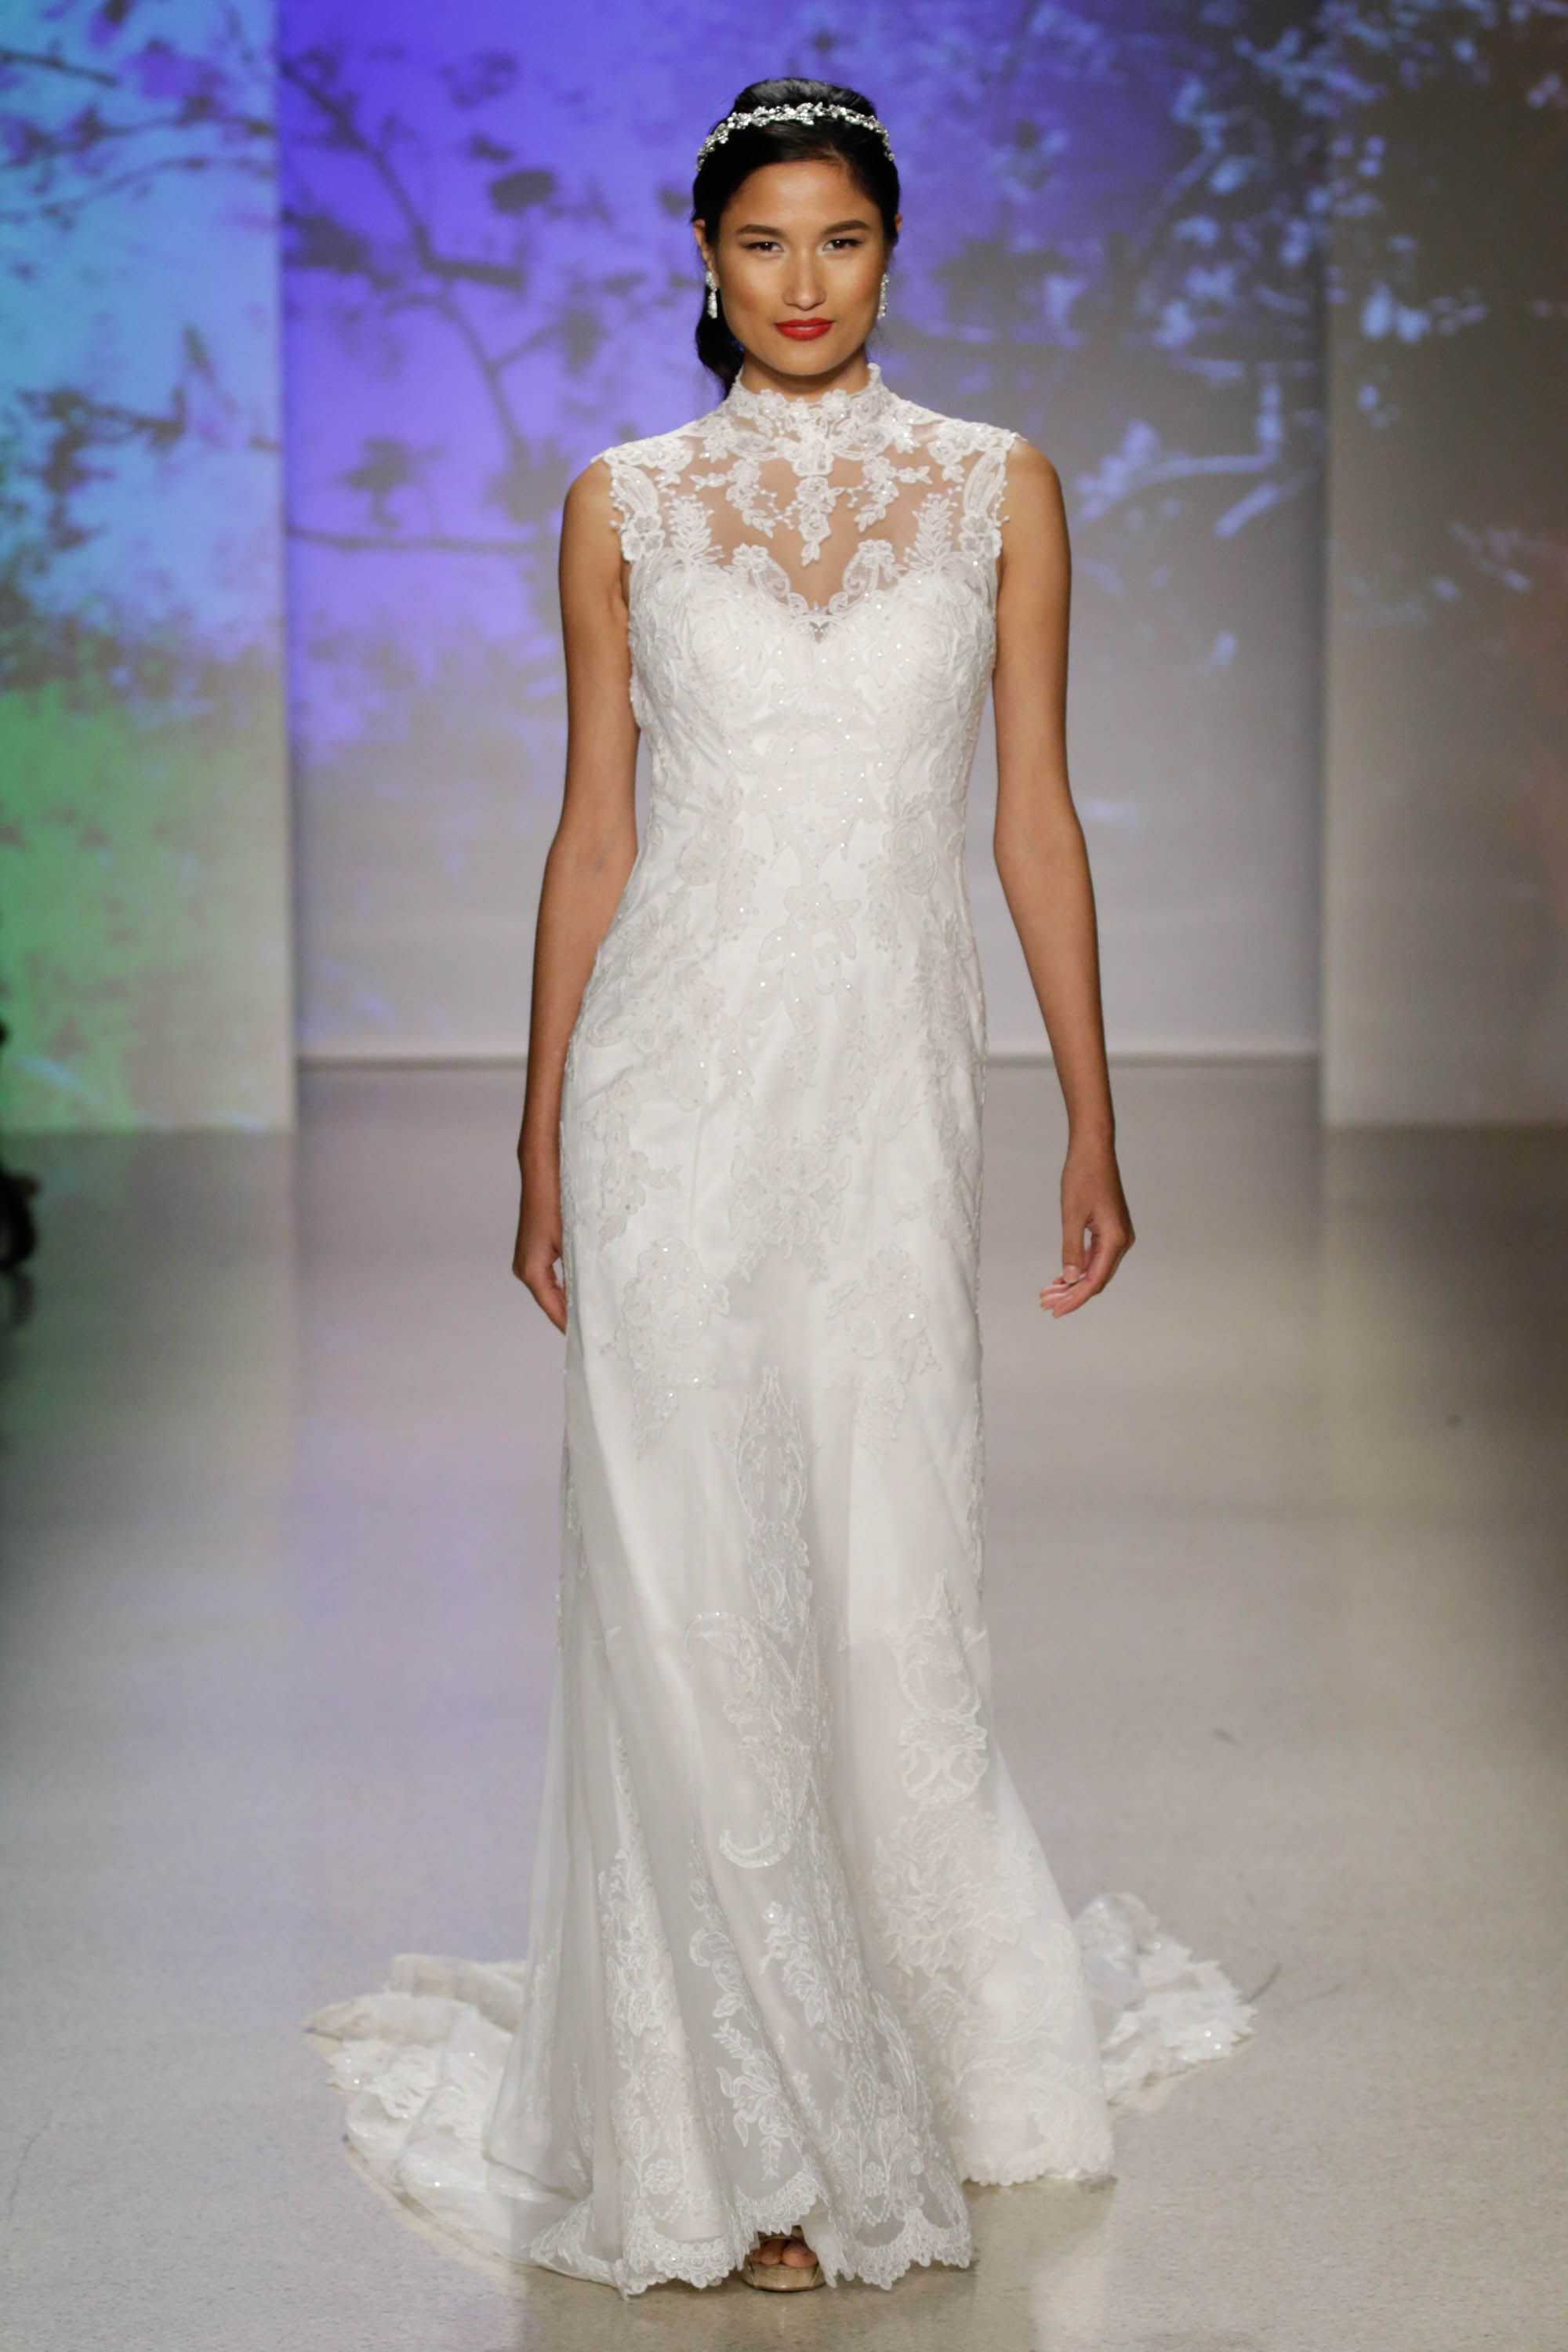 The Disney X Alfred Angelo Wedding Dress Collection Features Mulan And Pocahontas For First Time